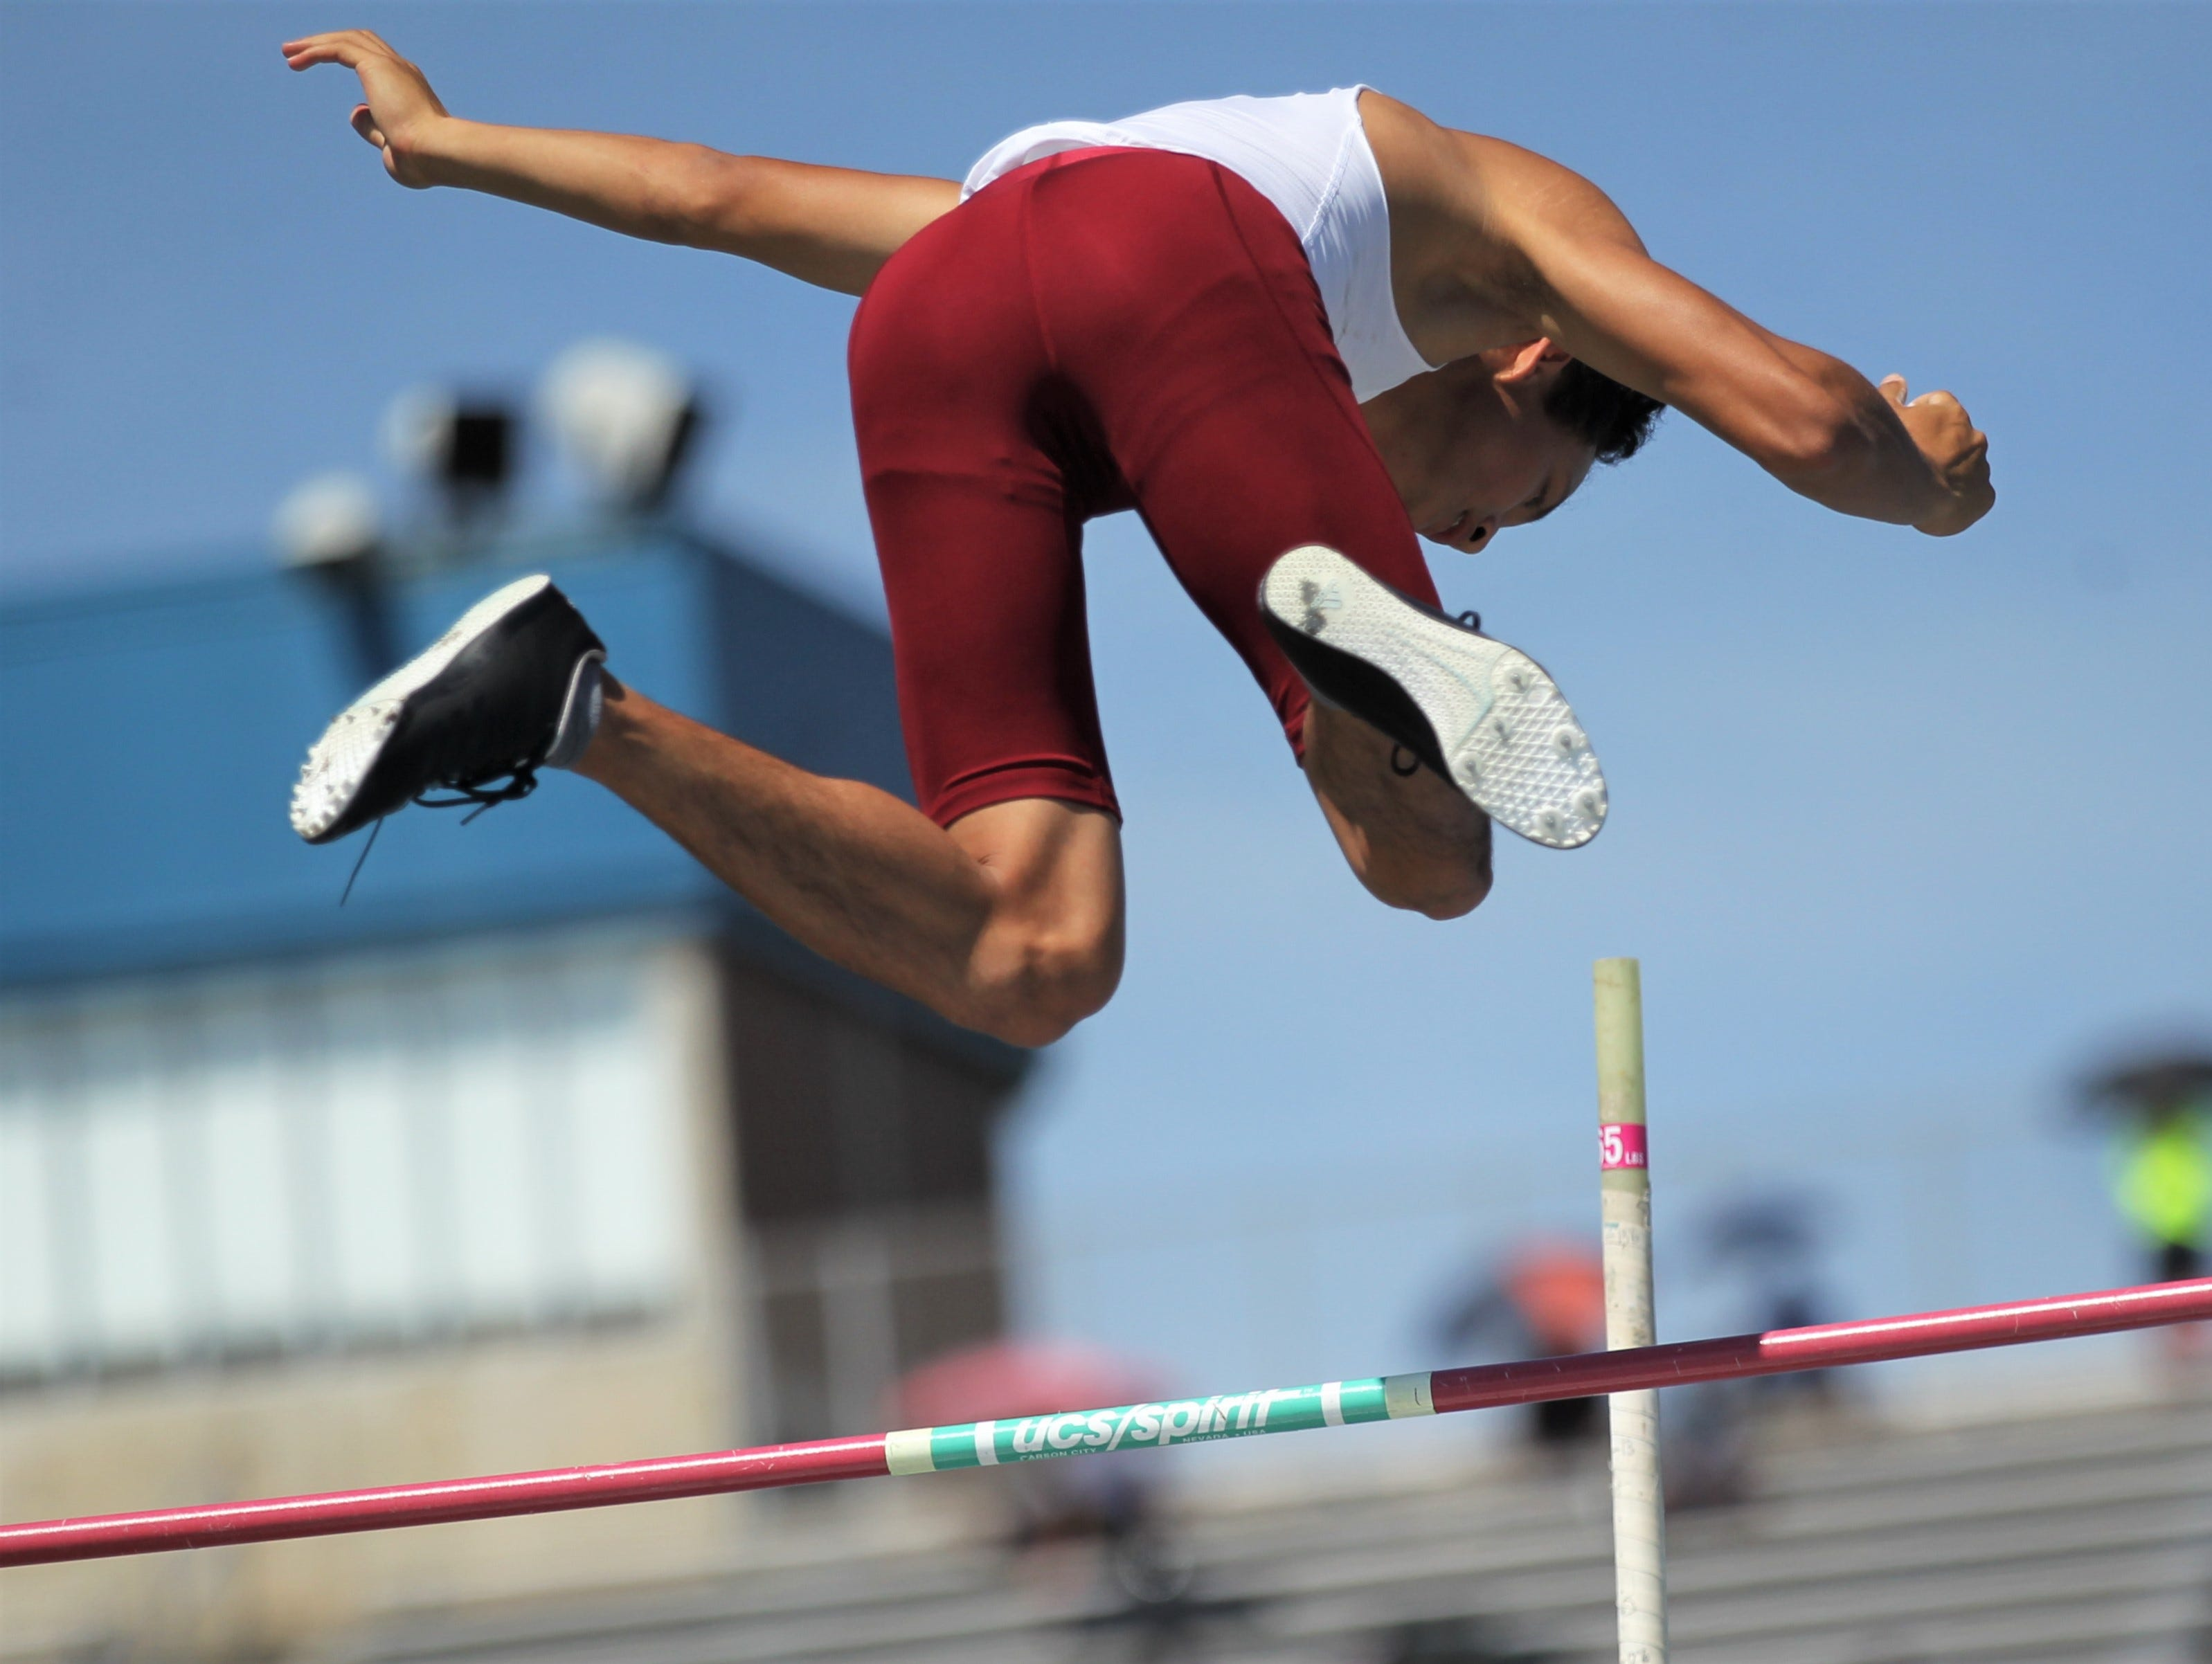 Florida High freshman Ming Pierson pole vaults during the FHSAA Track and Field State Championships at UNF's Hodges Stadium in Jacksonville on May 4, 2019.